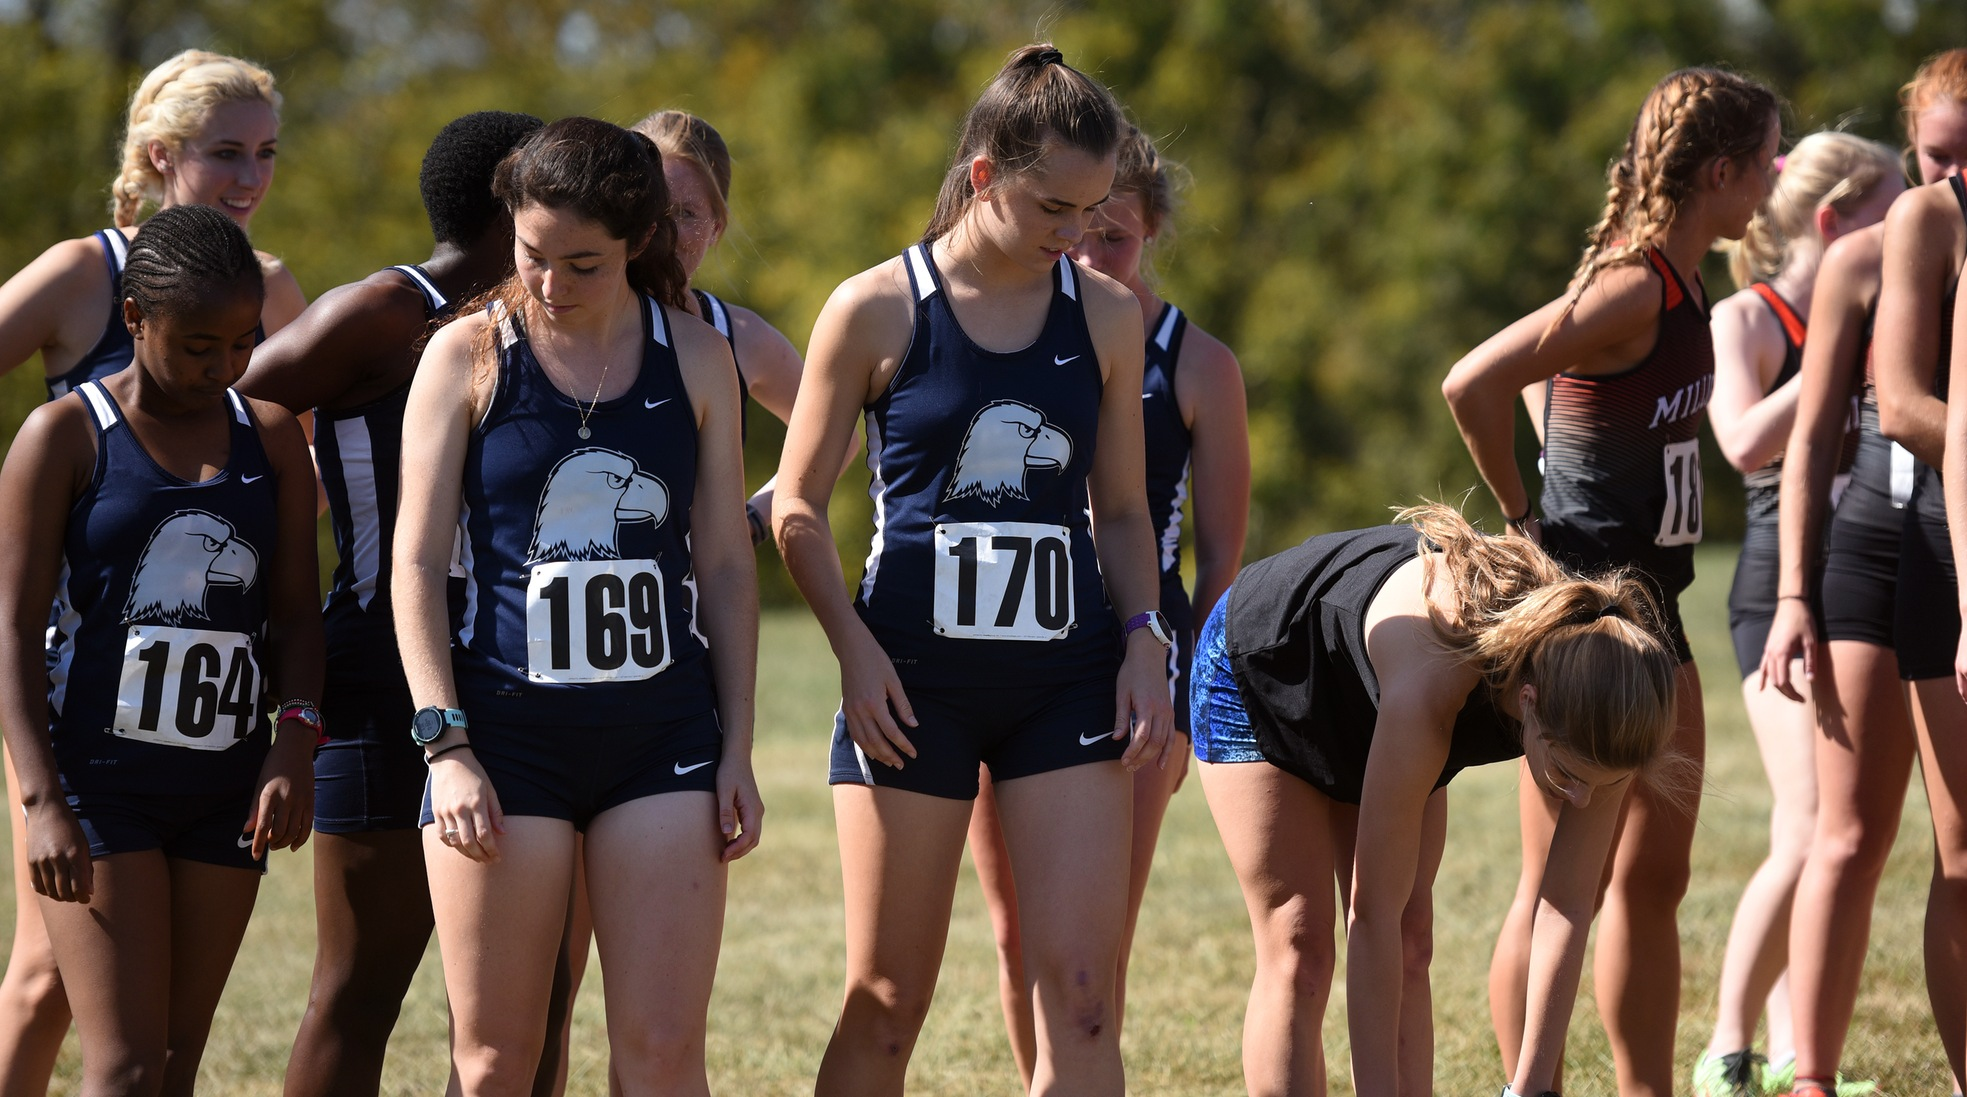 Eagles looking to shine in Southeast Regional meet